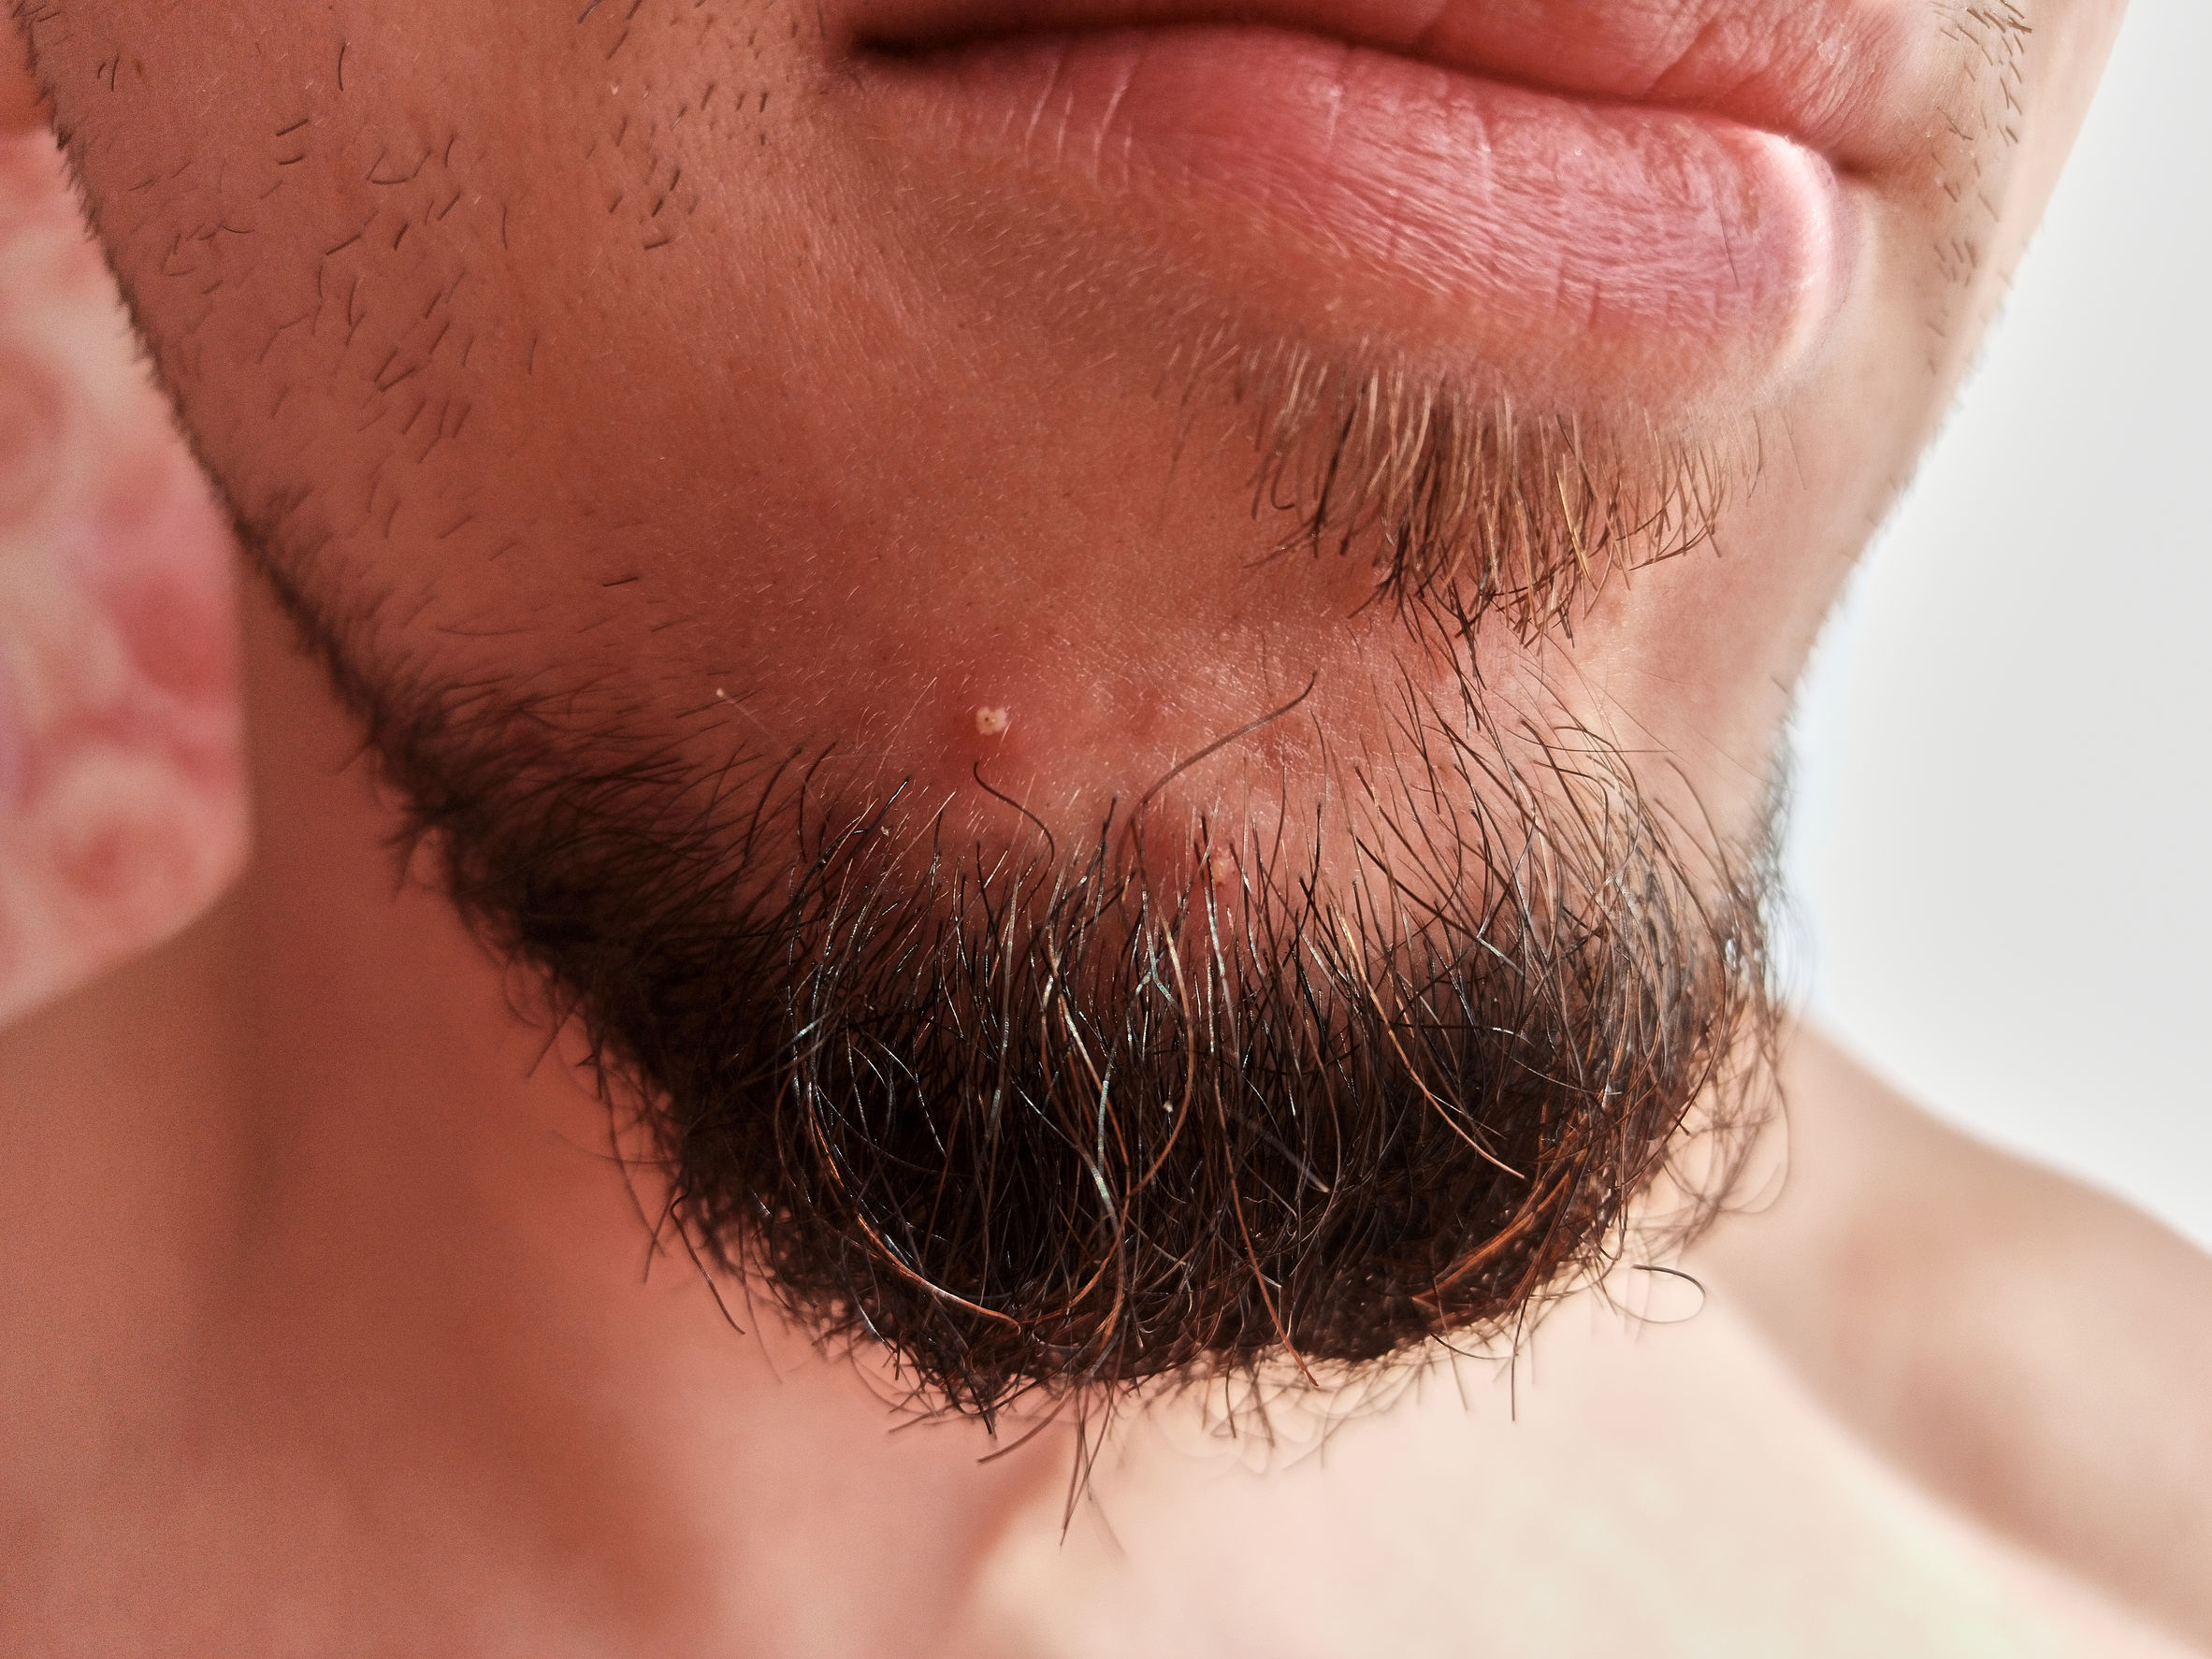 a young man with a pimple in his beard